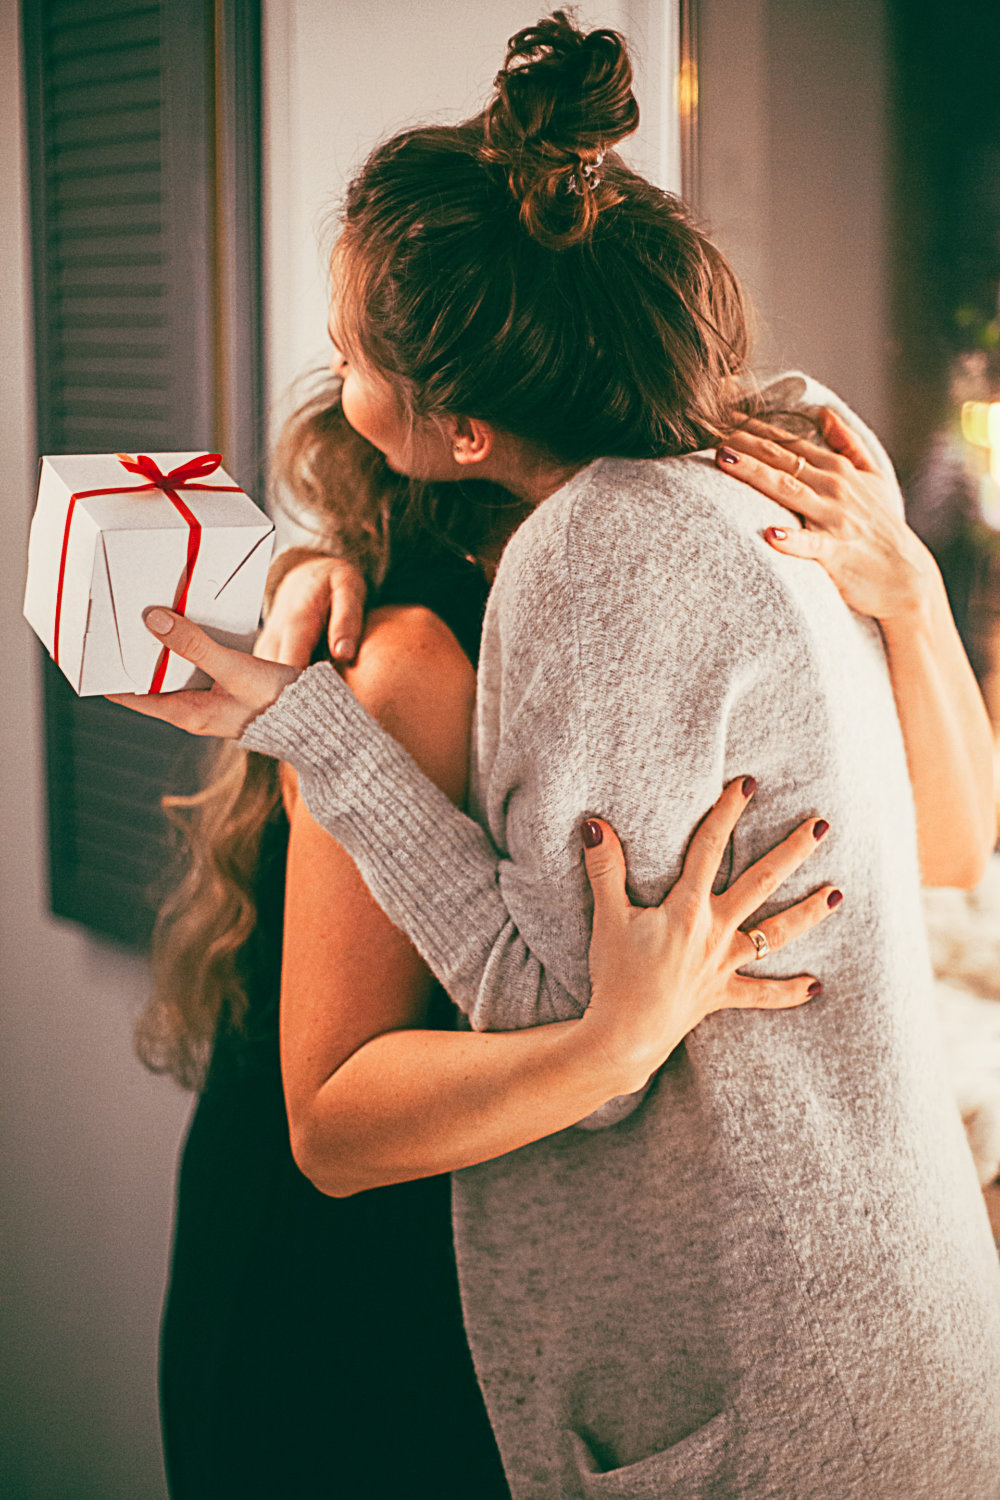 two women hugging each other, one with present on her hand